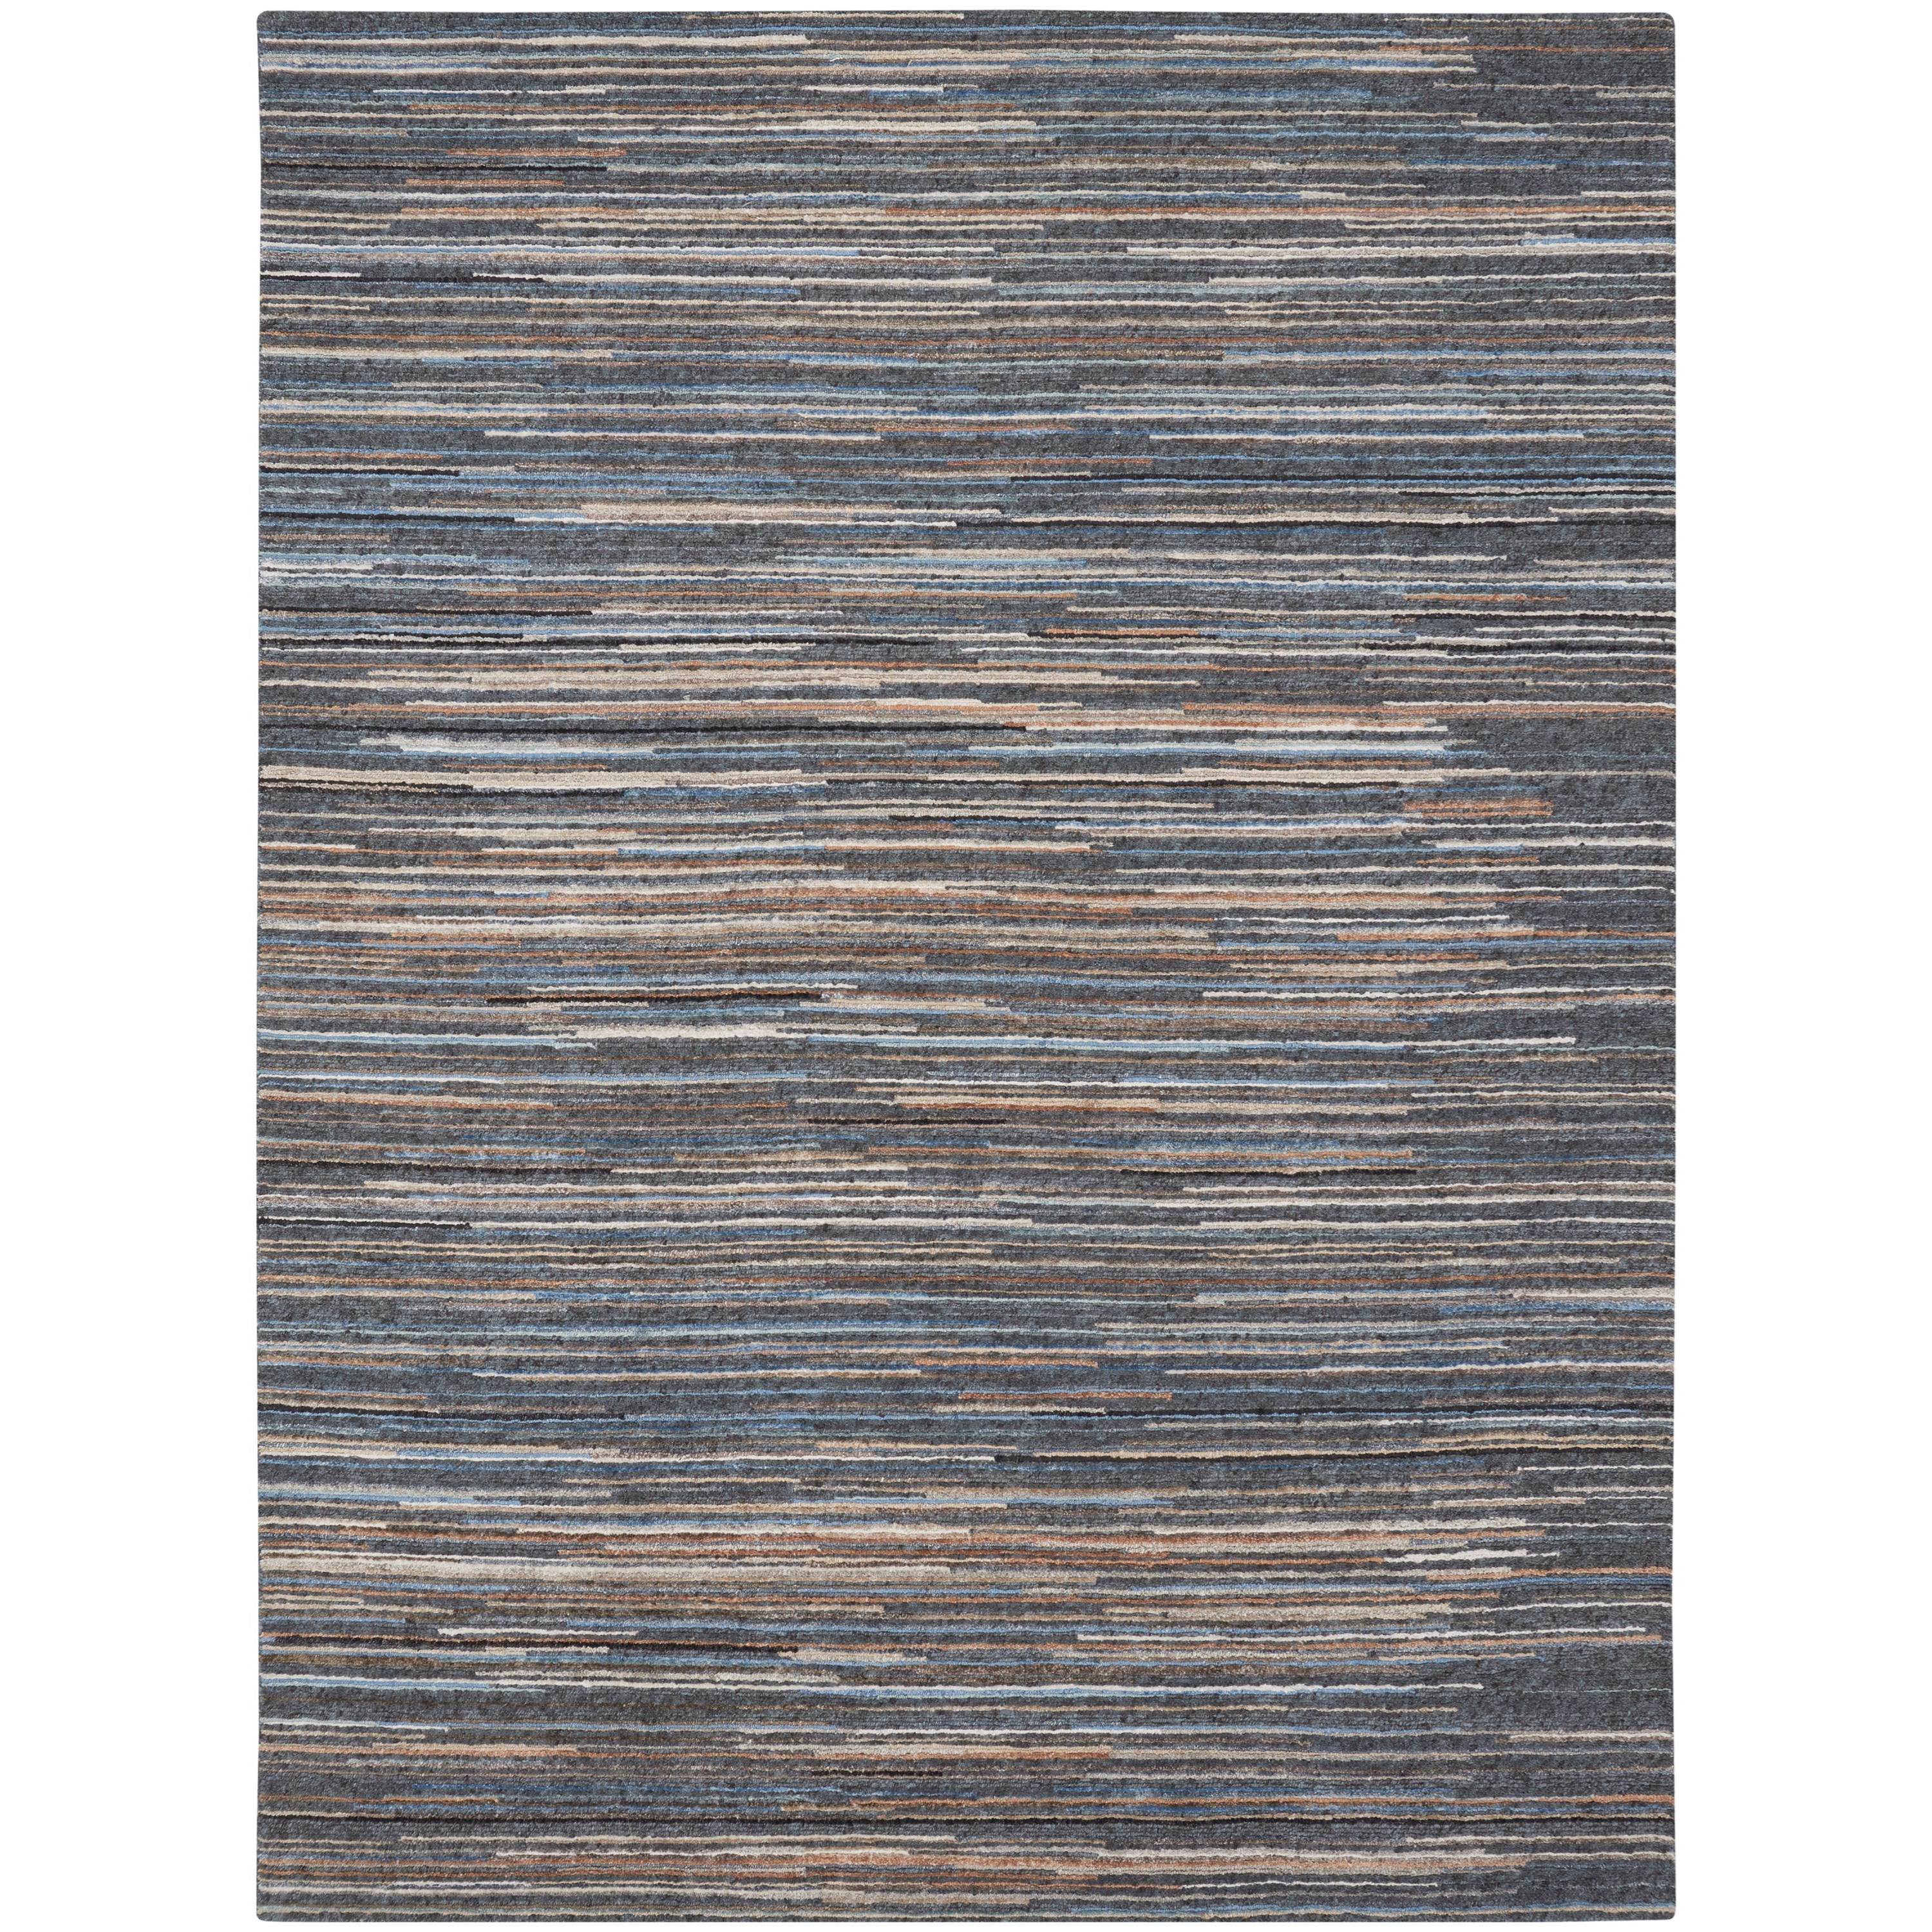 Plateau 2020 9' x 12' Rug by Nourison at Sprintz Furniture